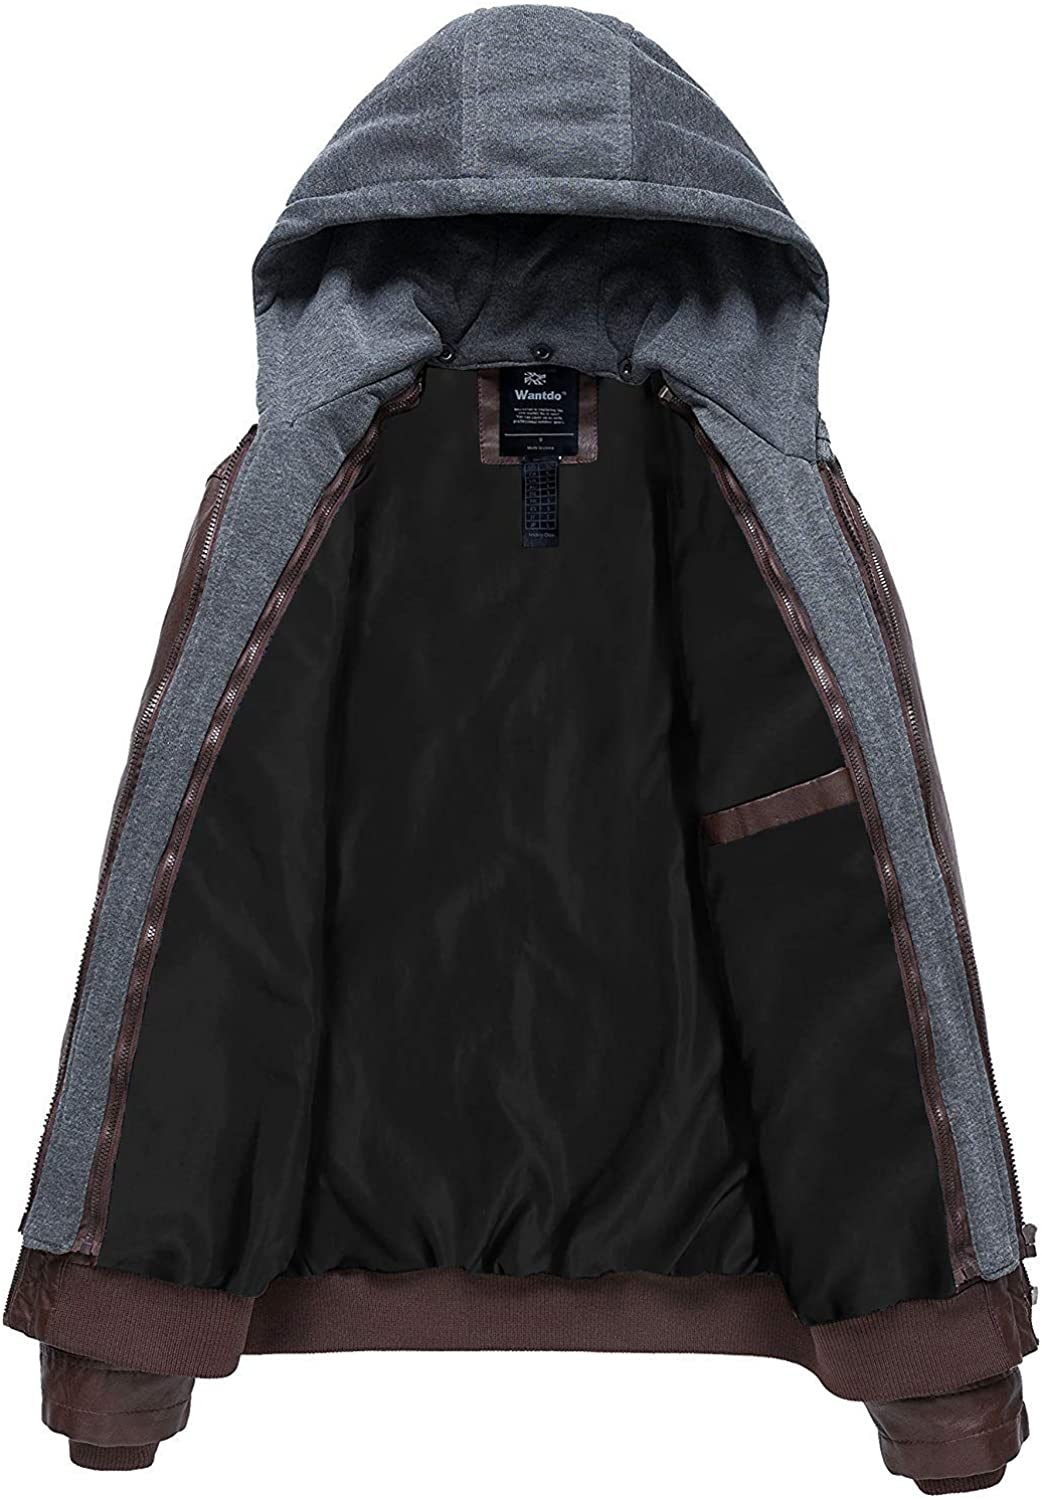 Wantdo Mens Faux Leather Jacket with Removable Hood Motorcycle Jacket Vintage Warm Winter Coat